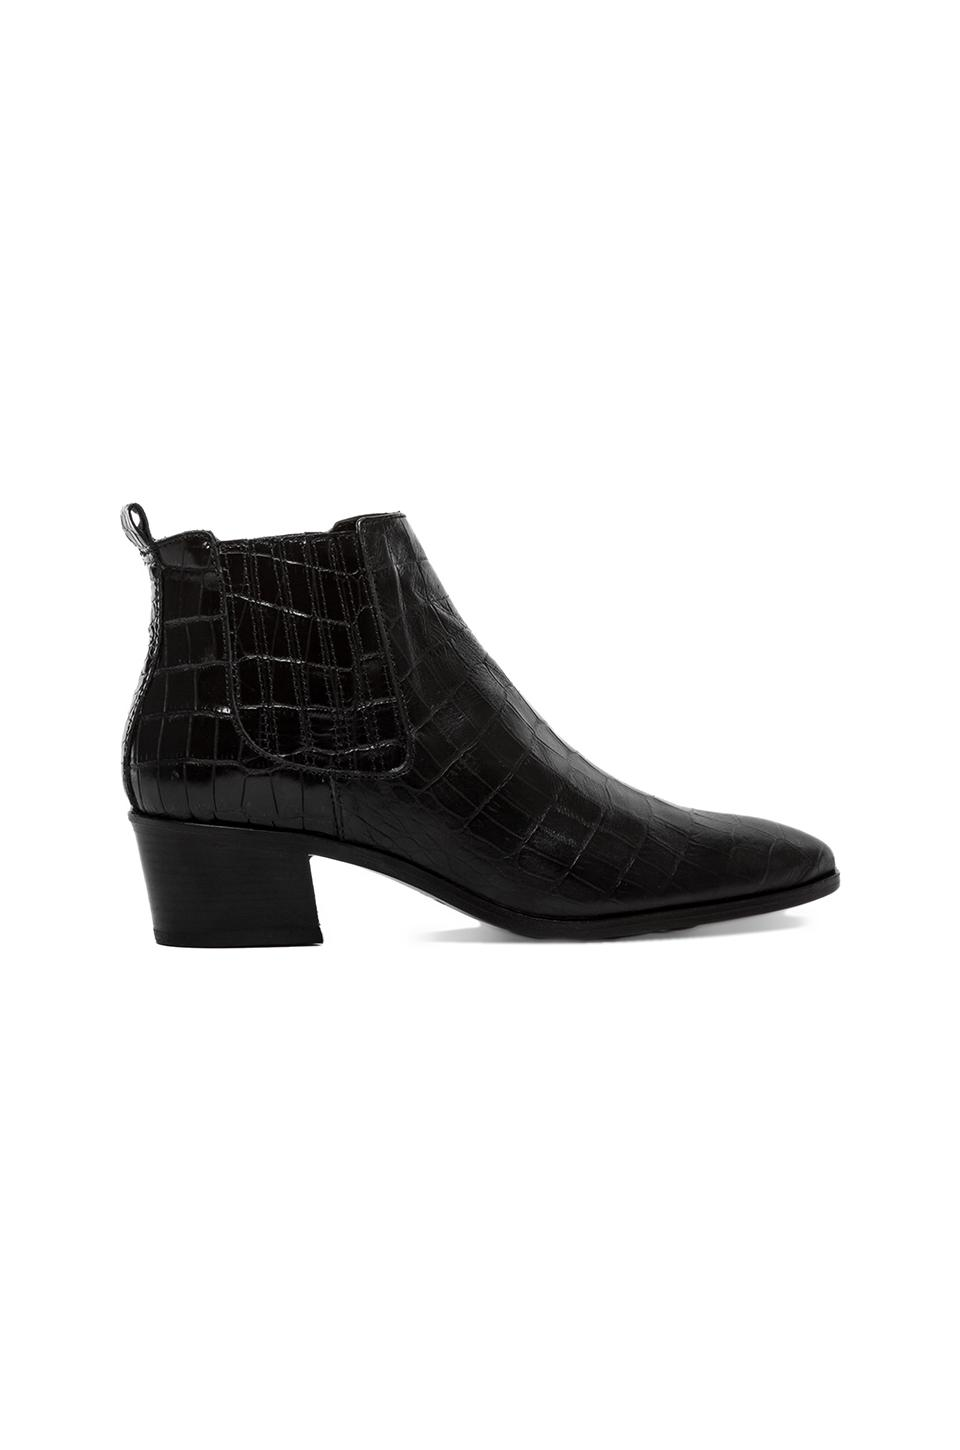 MODERN VICE COLLECTION Handler Bootie in Black Embossed Croc from REVOLVEclothing.com